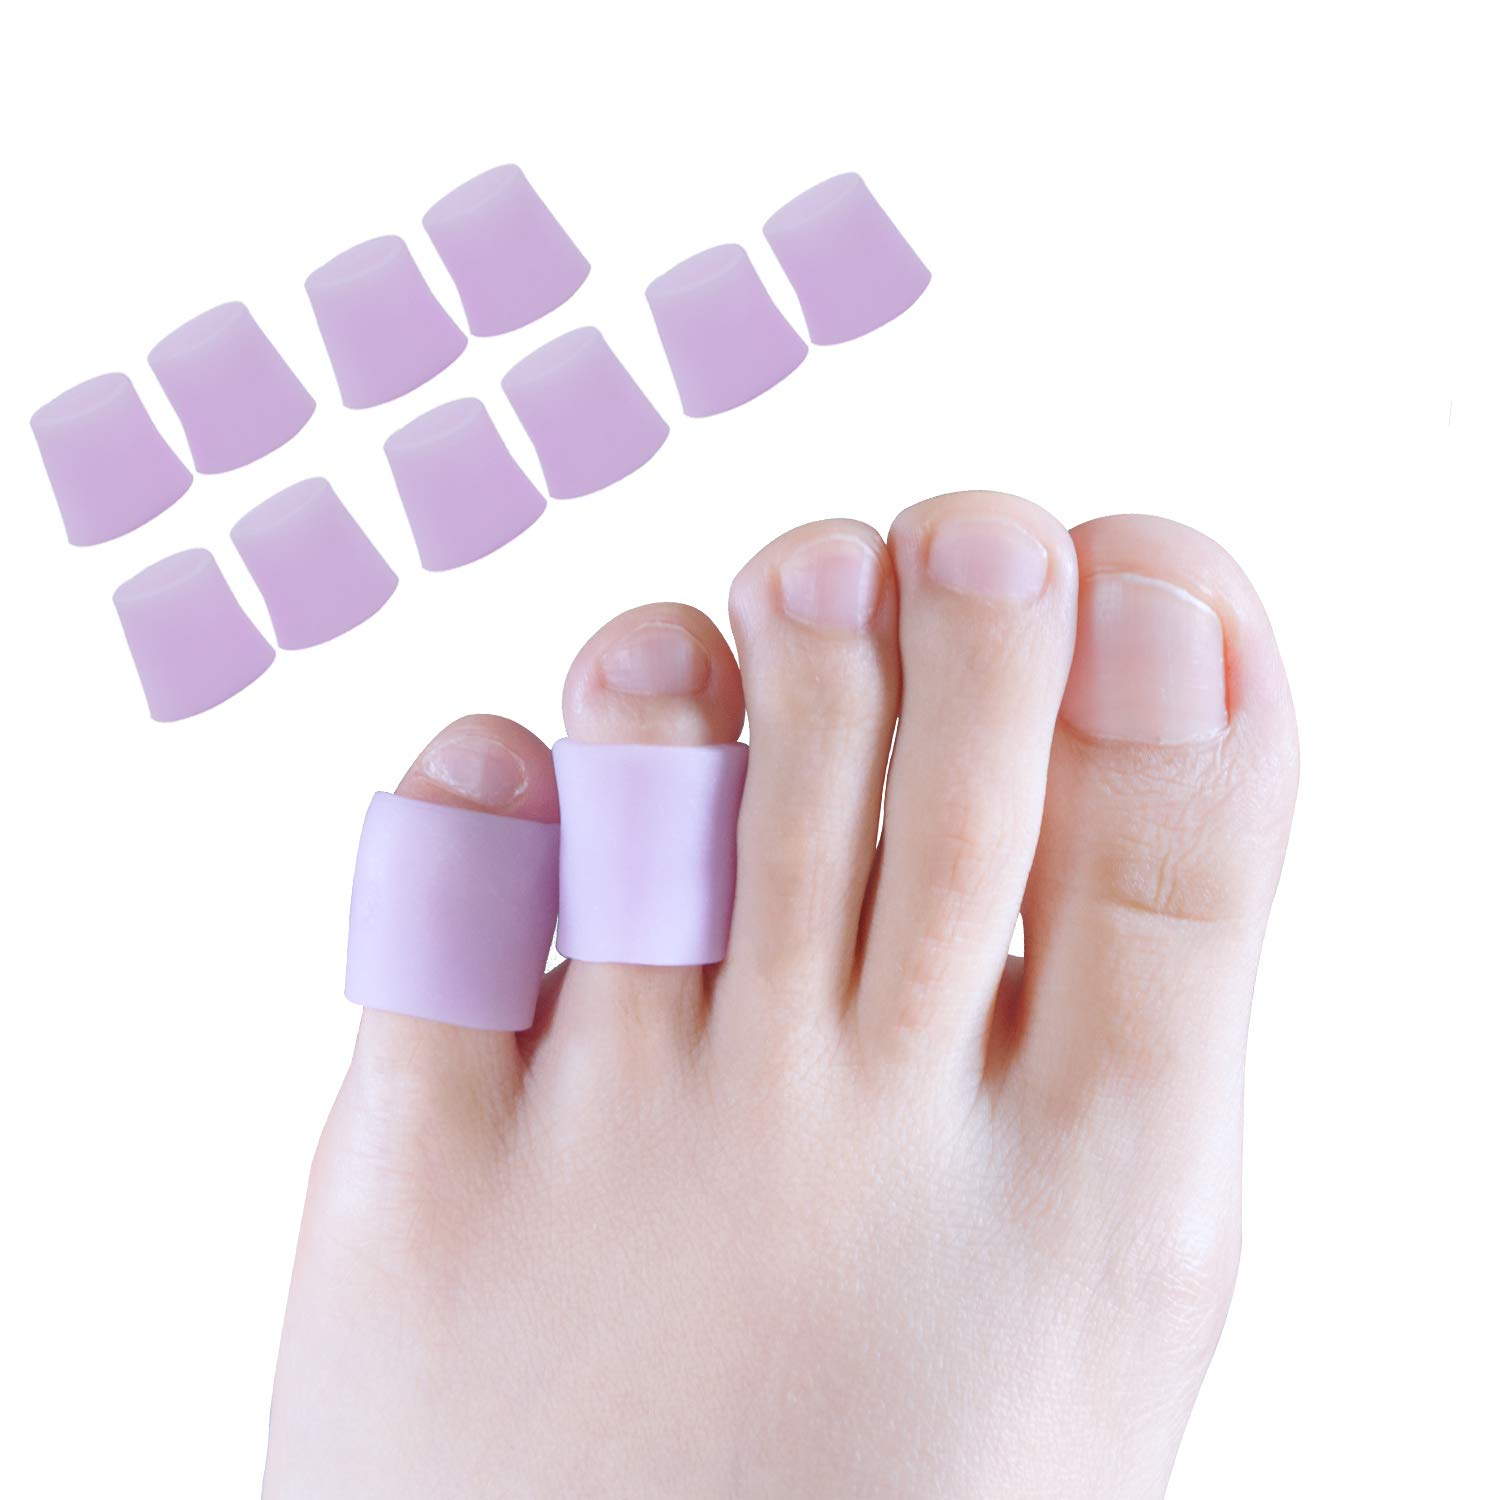 Toe Protectors, Toe Sleeves Silicone Small Gel Corn Protectors for Runners,Blisters,Shoes,Heels,Sandal Purple Pinky Toe Pain Relief 5 Pairs